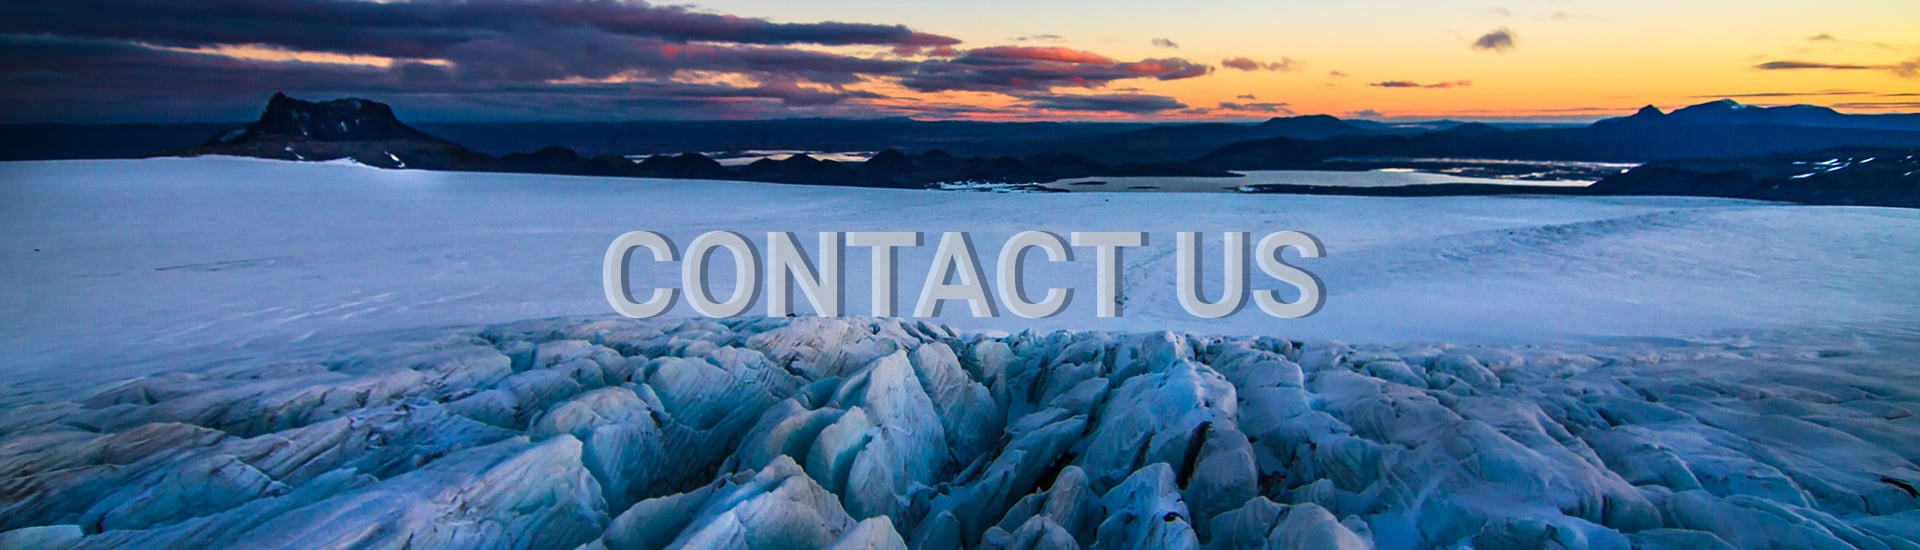 Contact us Atlantik heading image